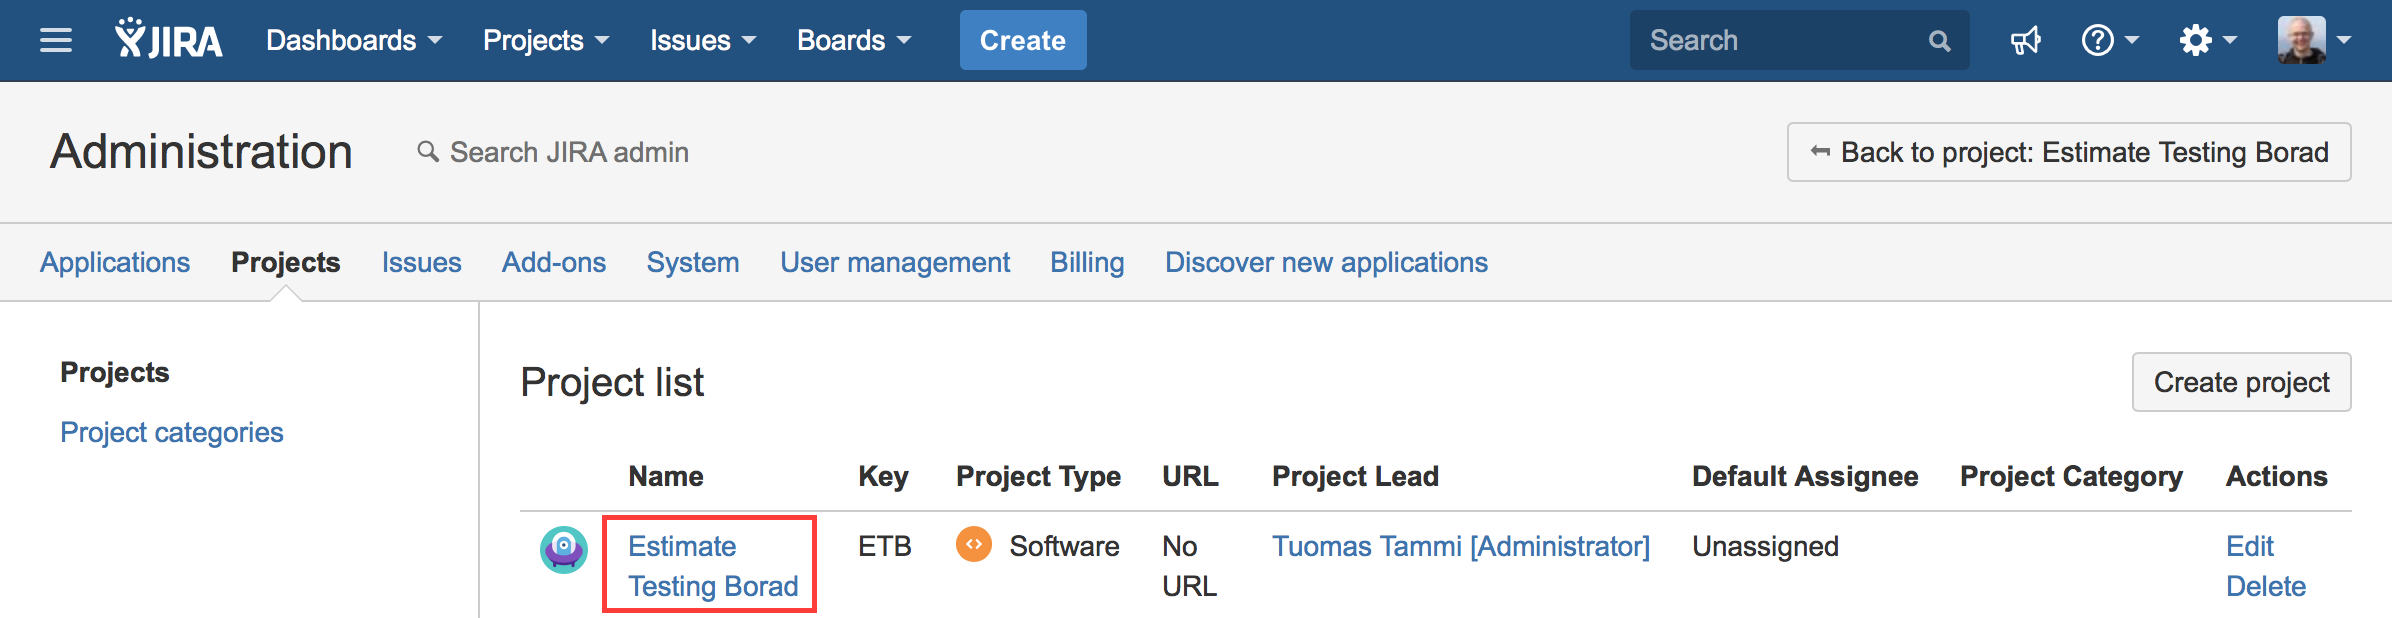 Select the project by clicking the name